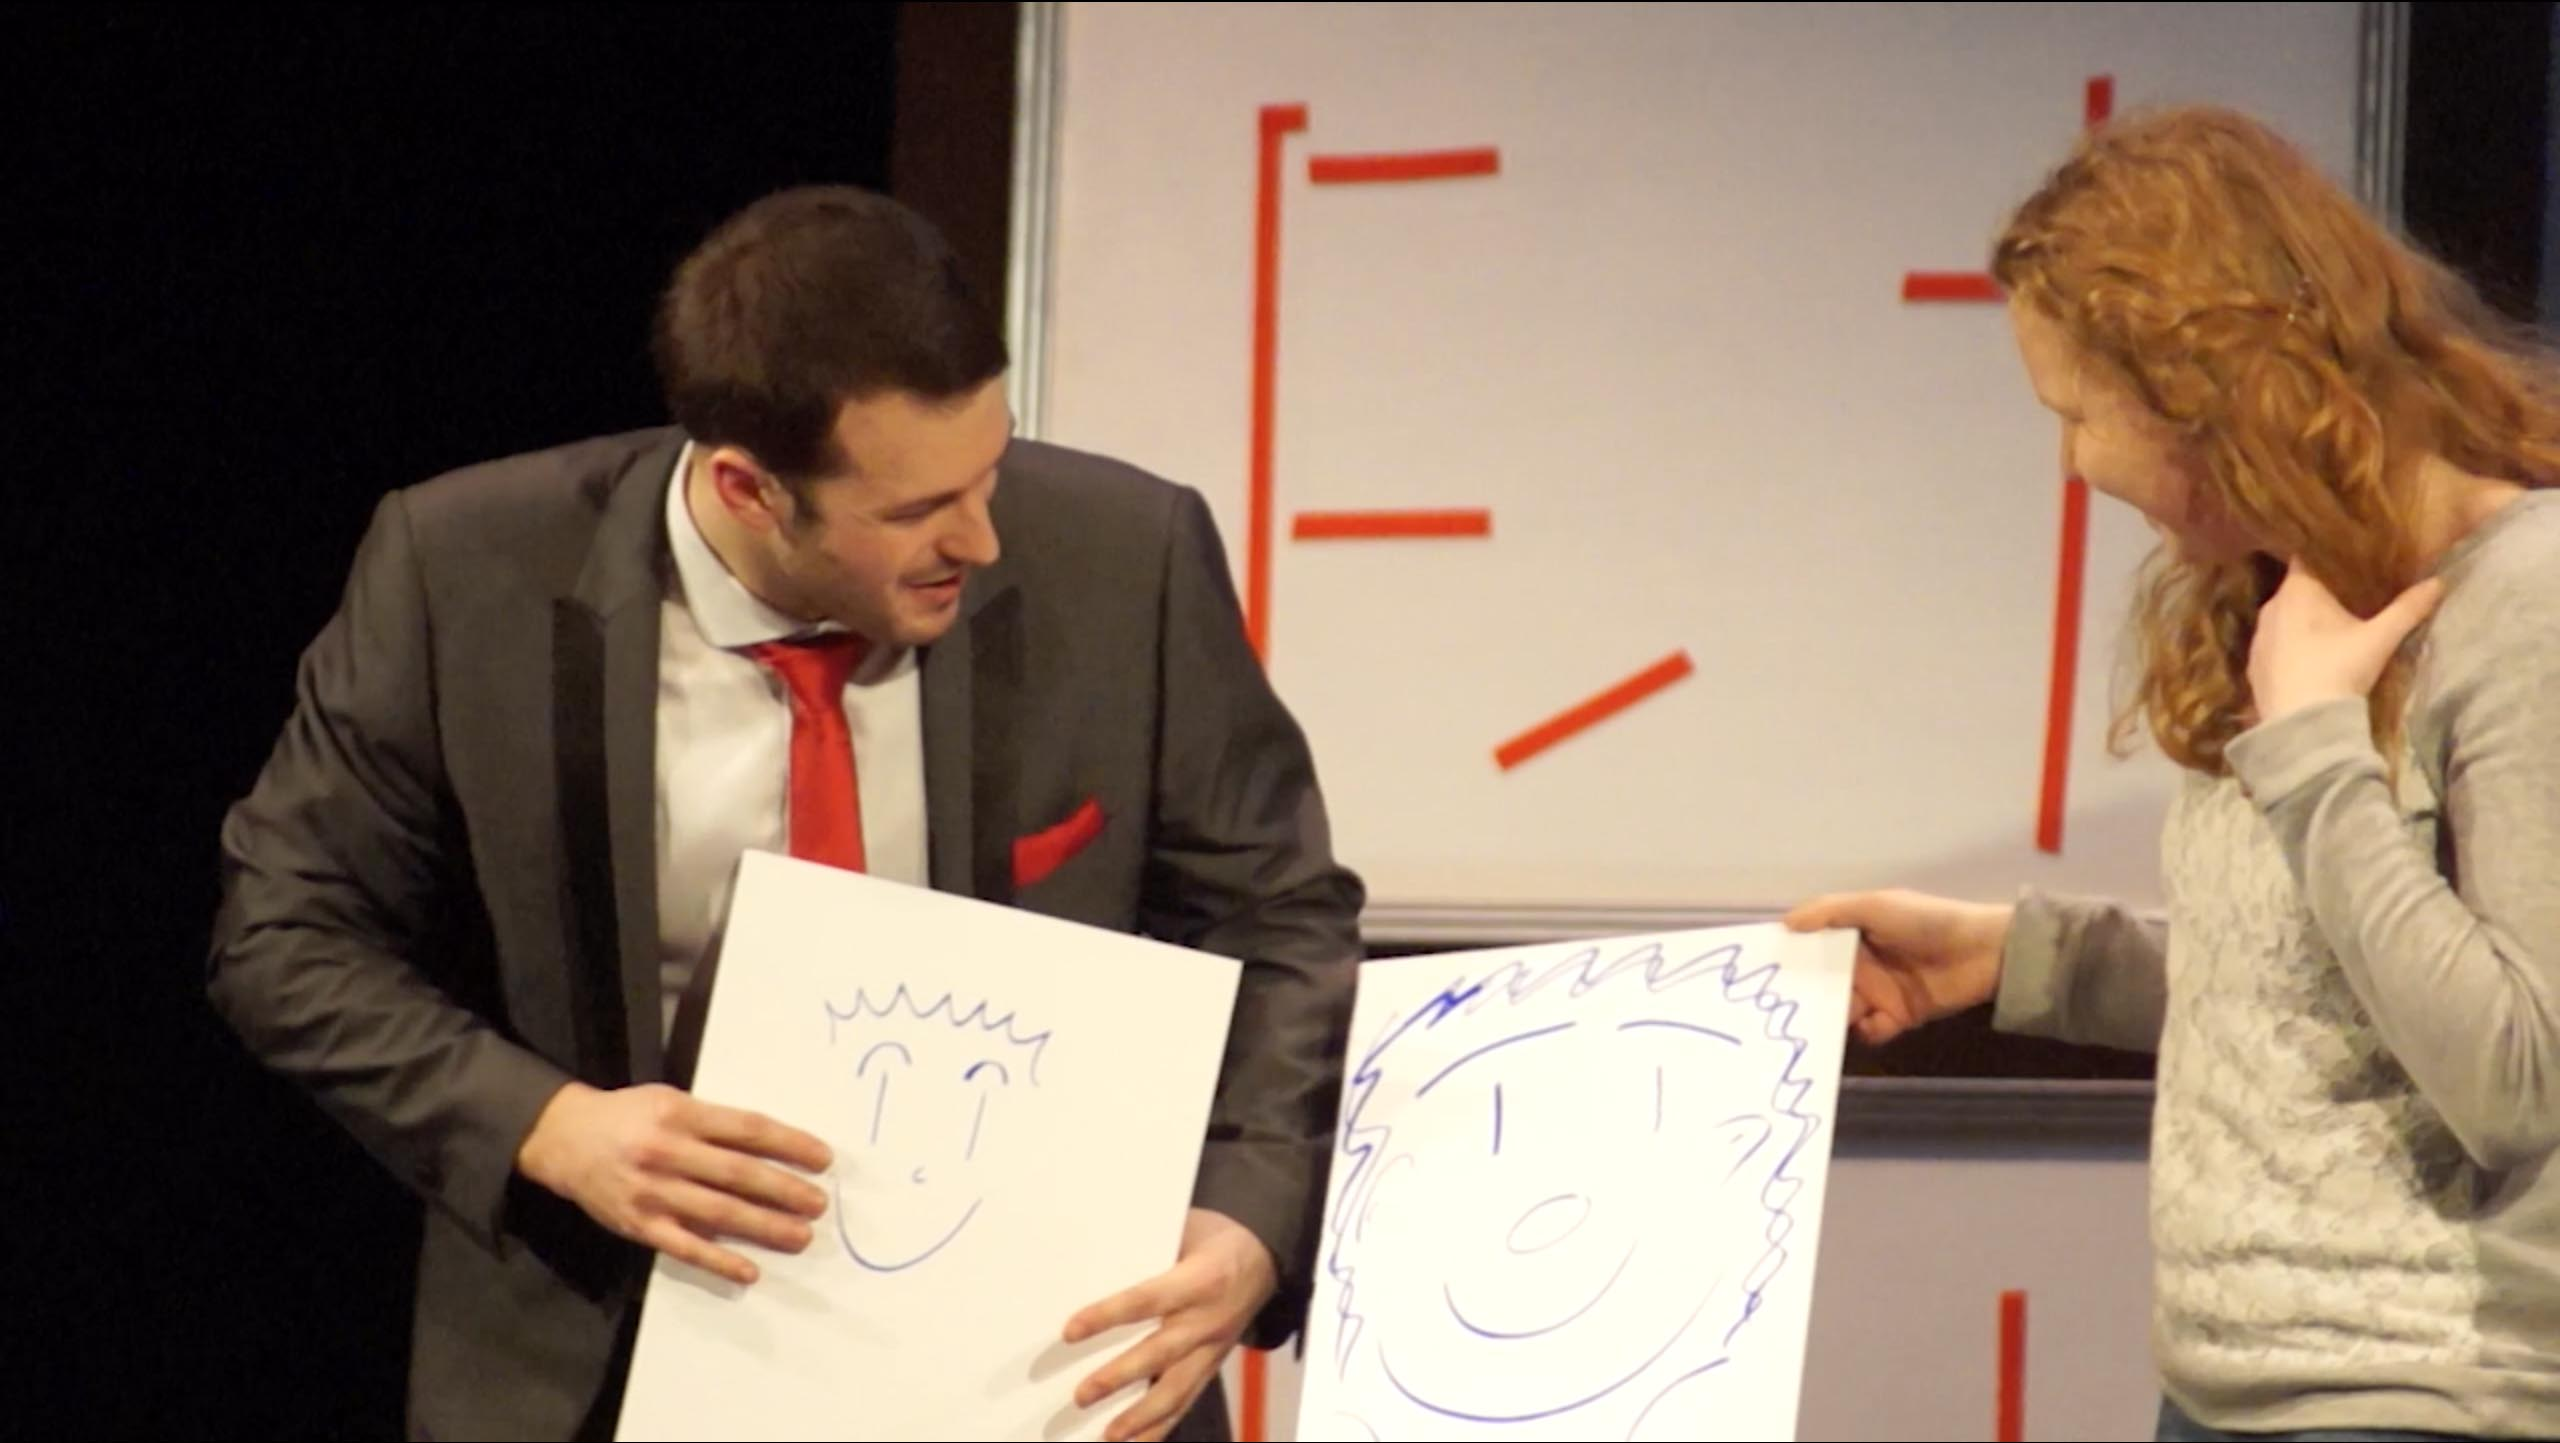 Mind Games theatre show comparing pictures